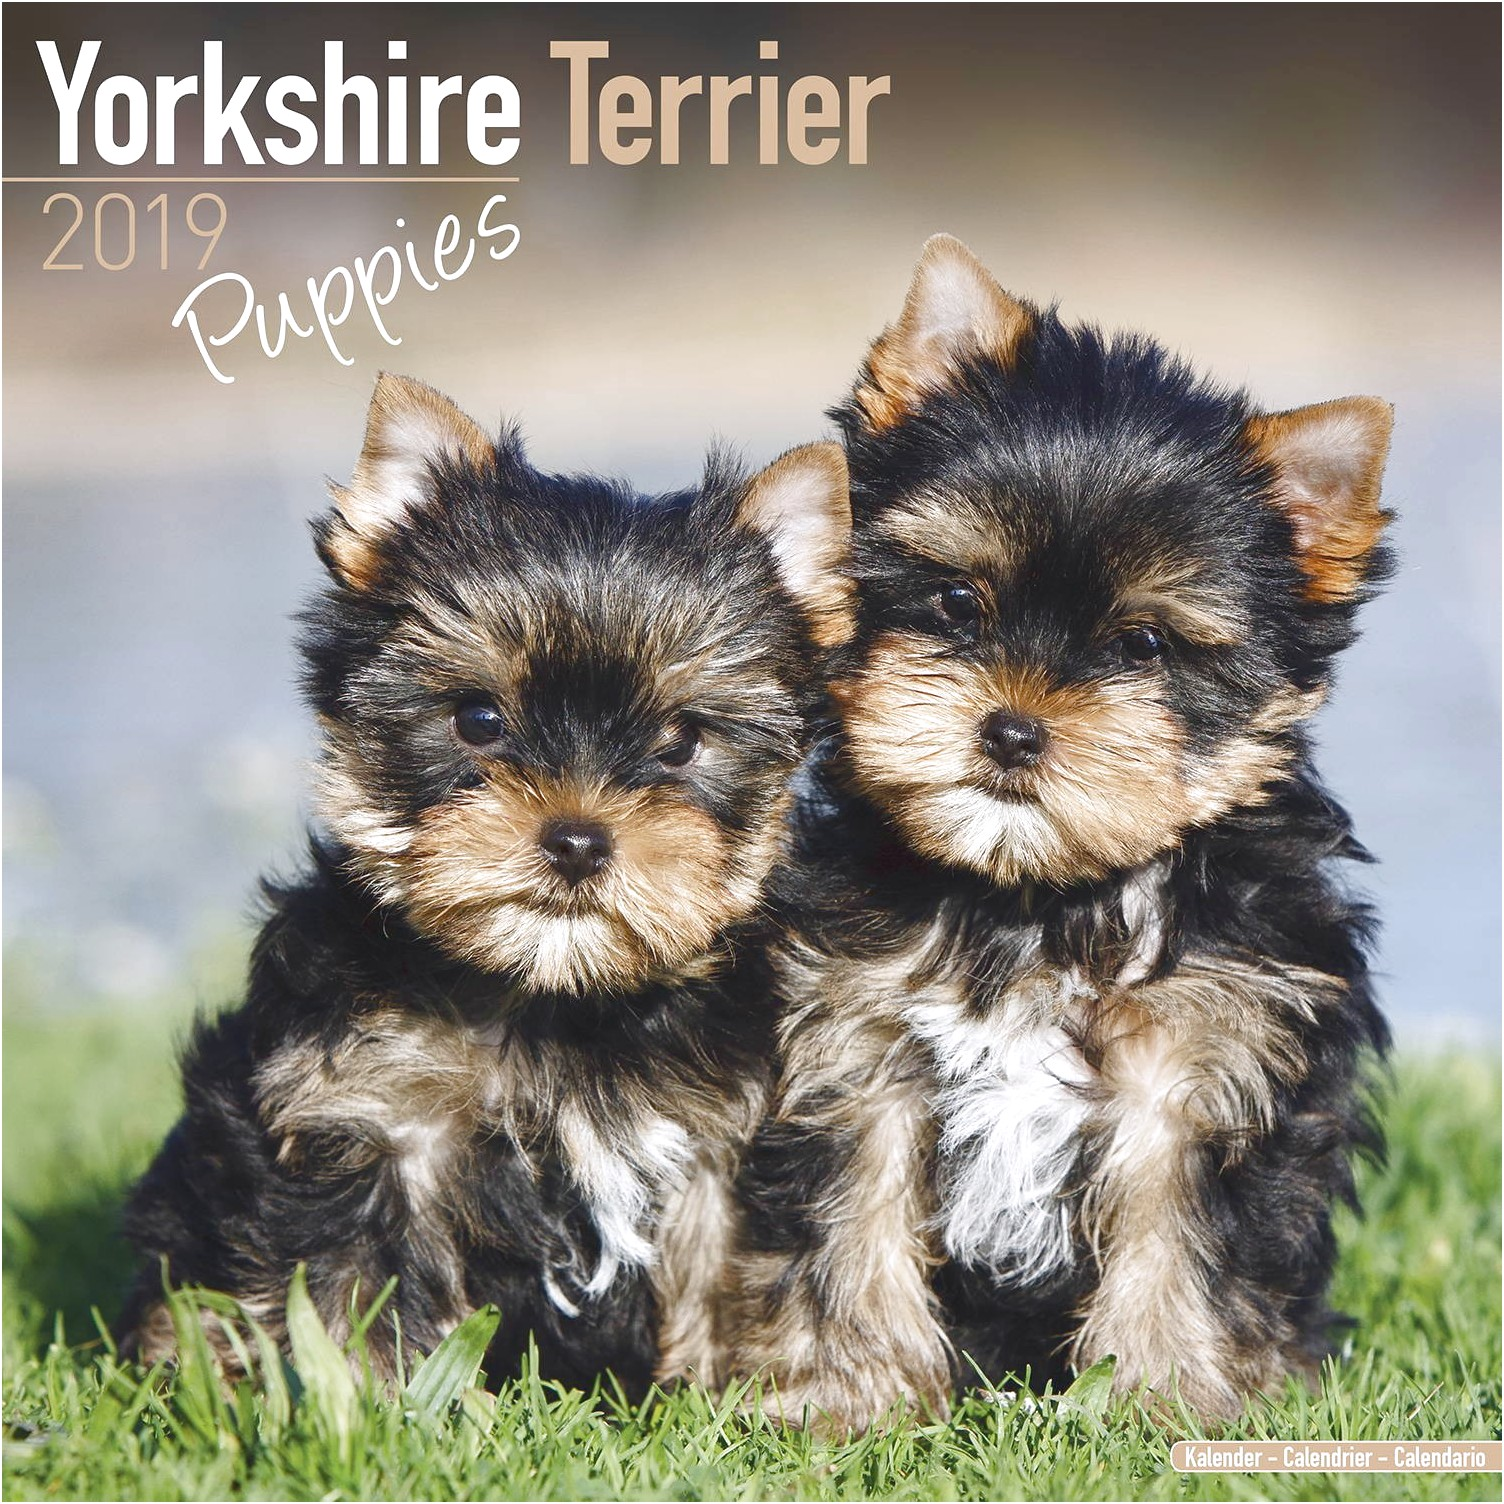 yorkshire terrier puppies to buy